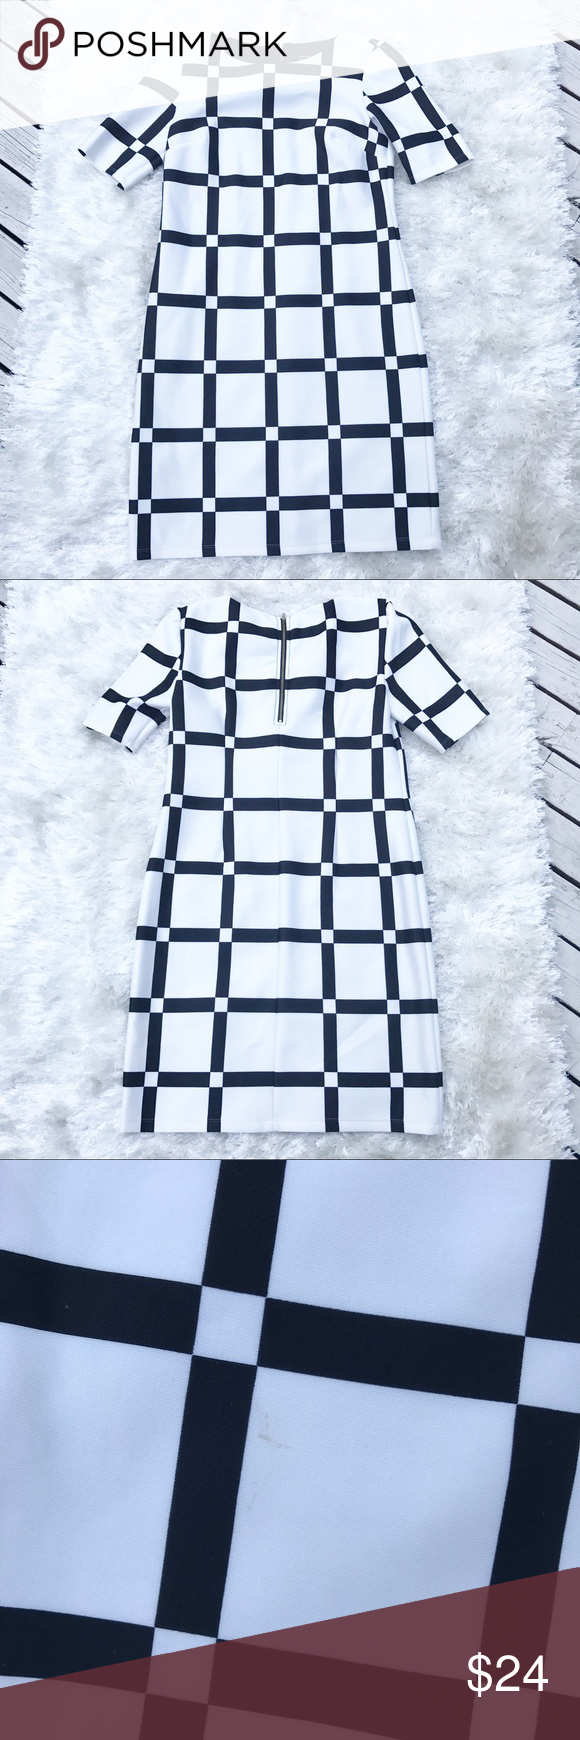 B&W Geometric Square Dress Square pattern dress from RMLL. Black and white. Small marks on bottom of dress (see photo). Size 8. Dresses